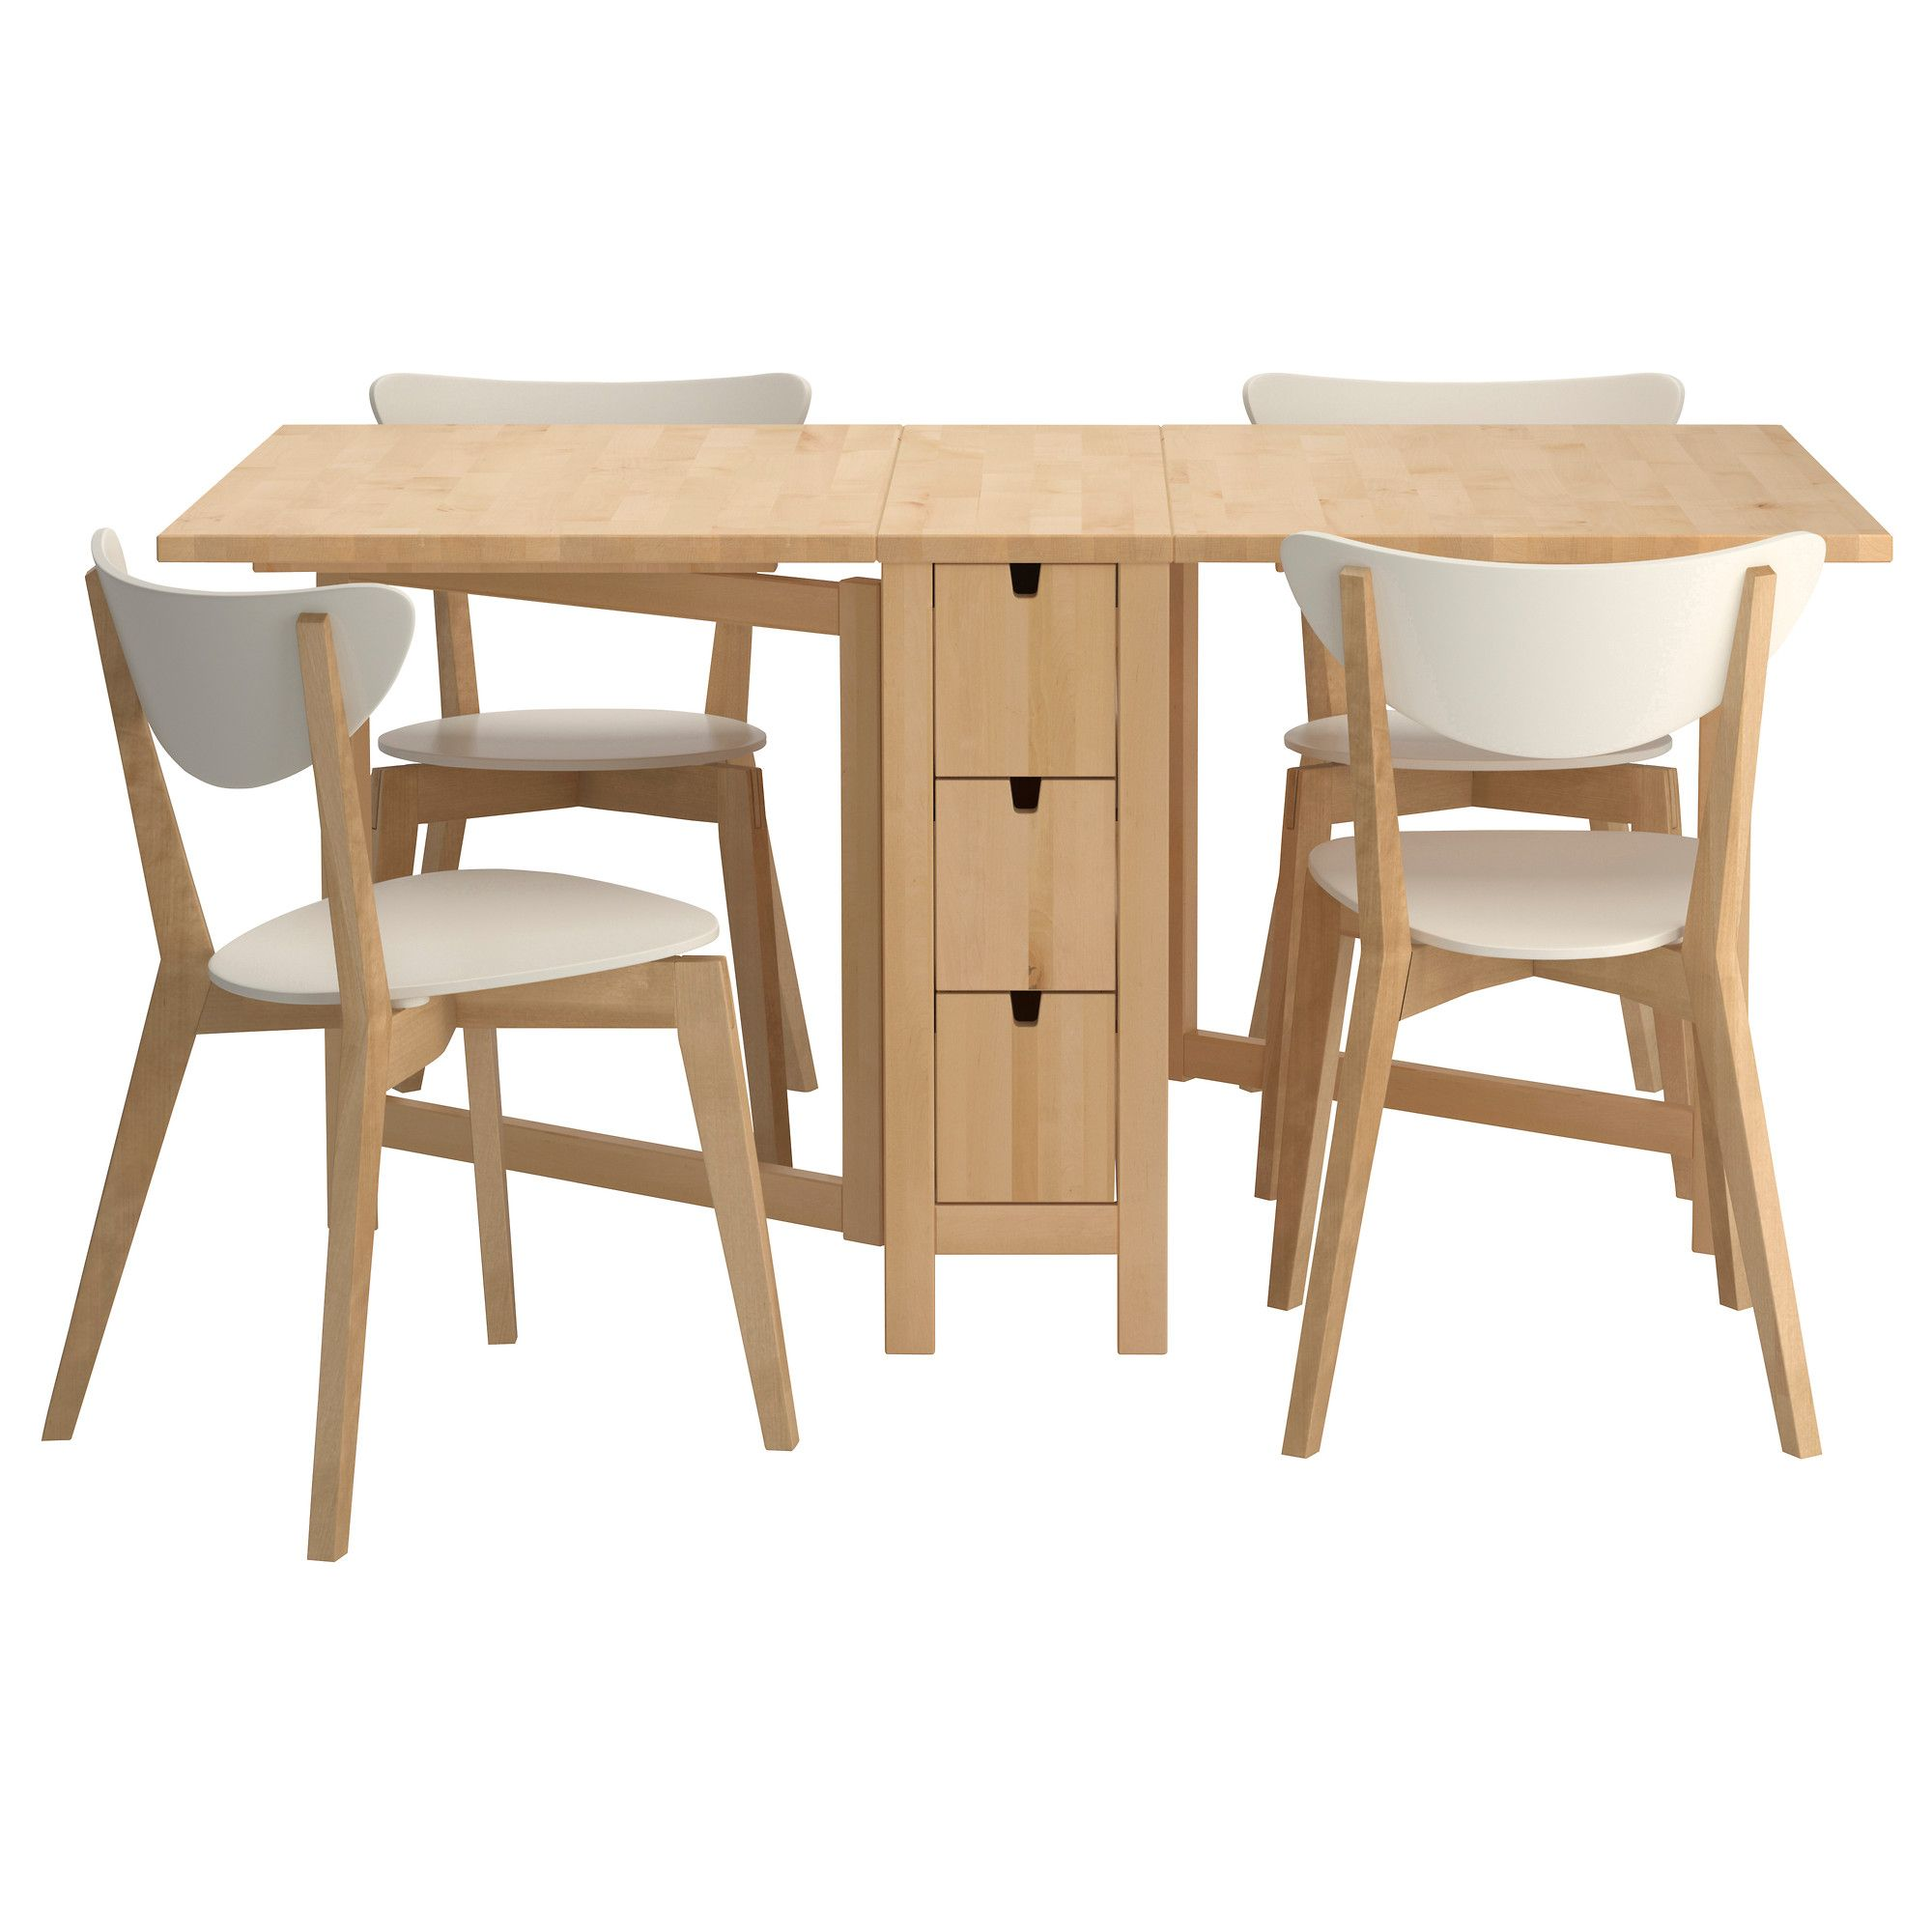 Norden nordmyra table and 4 chairs ikea for the love for Ikea dining table and chairs set